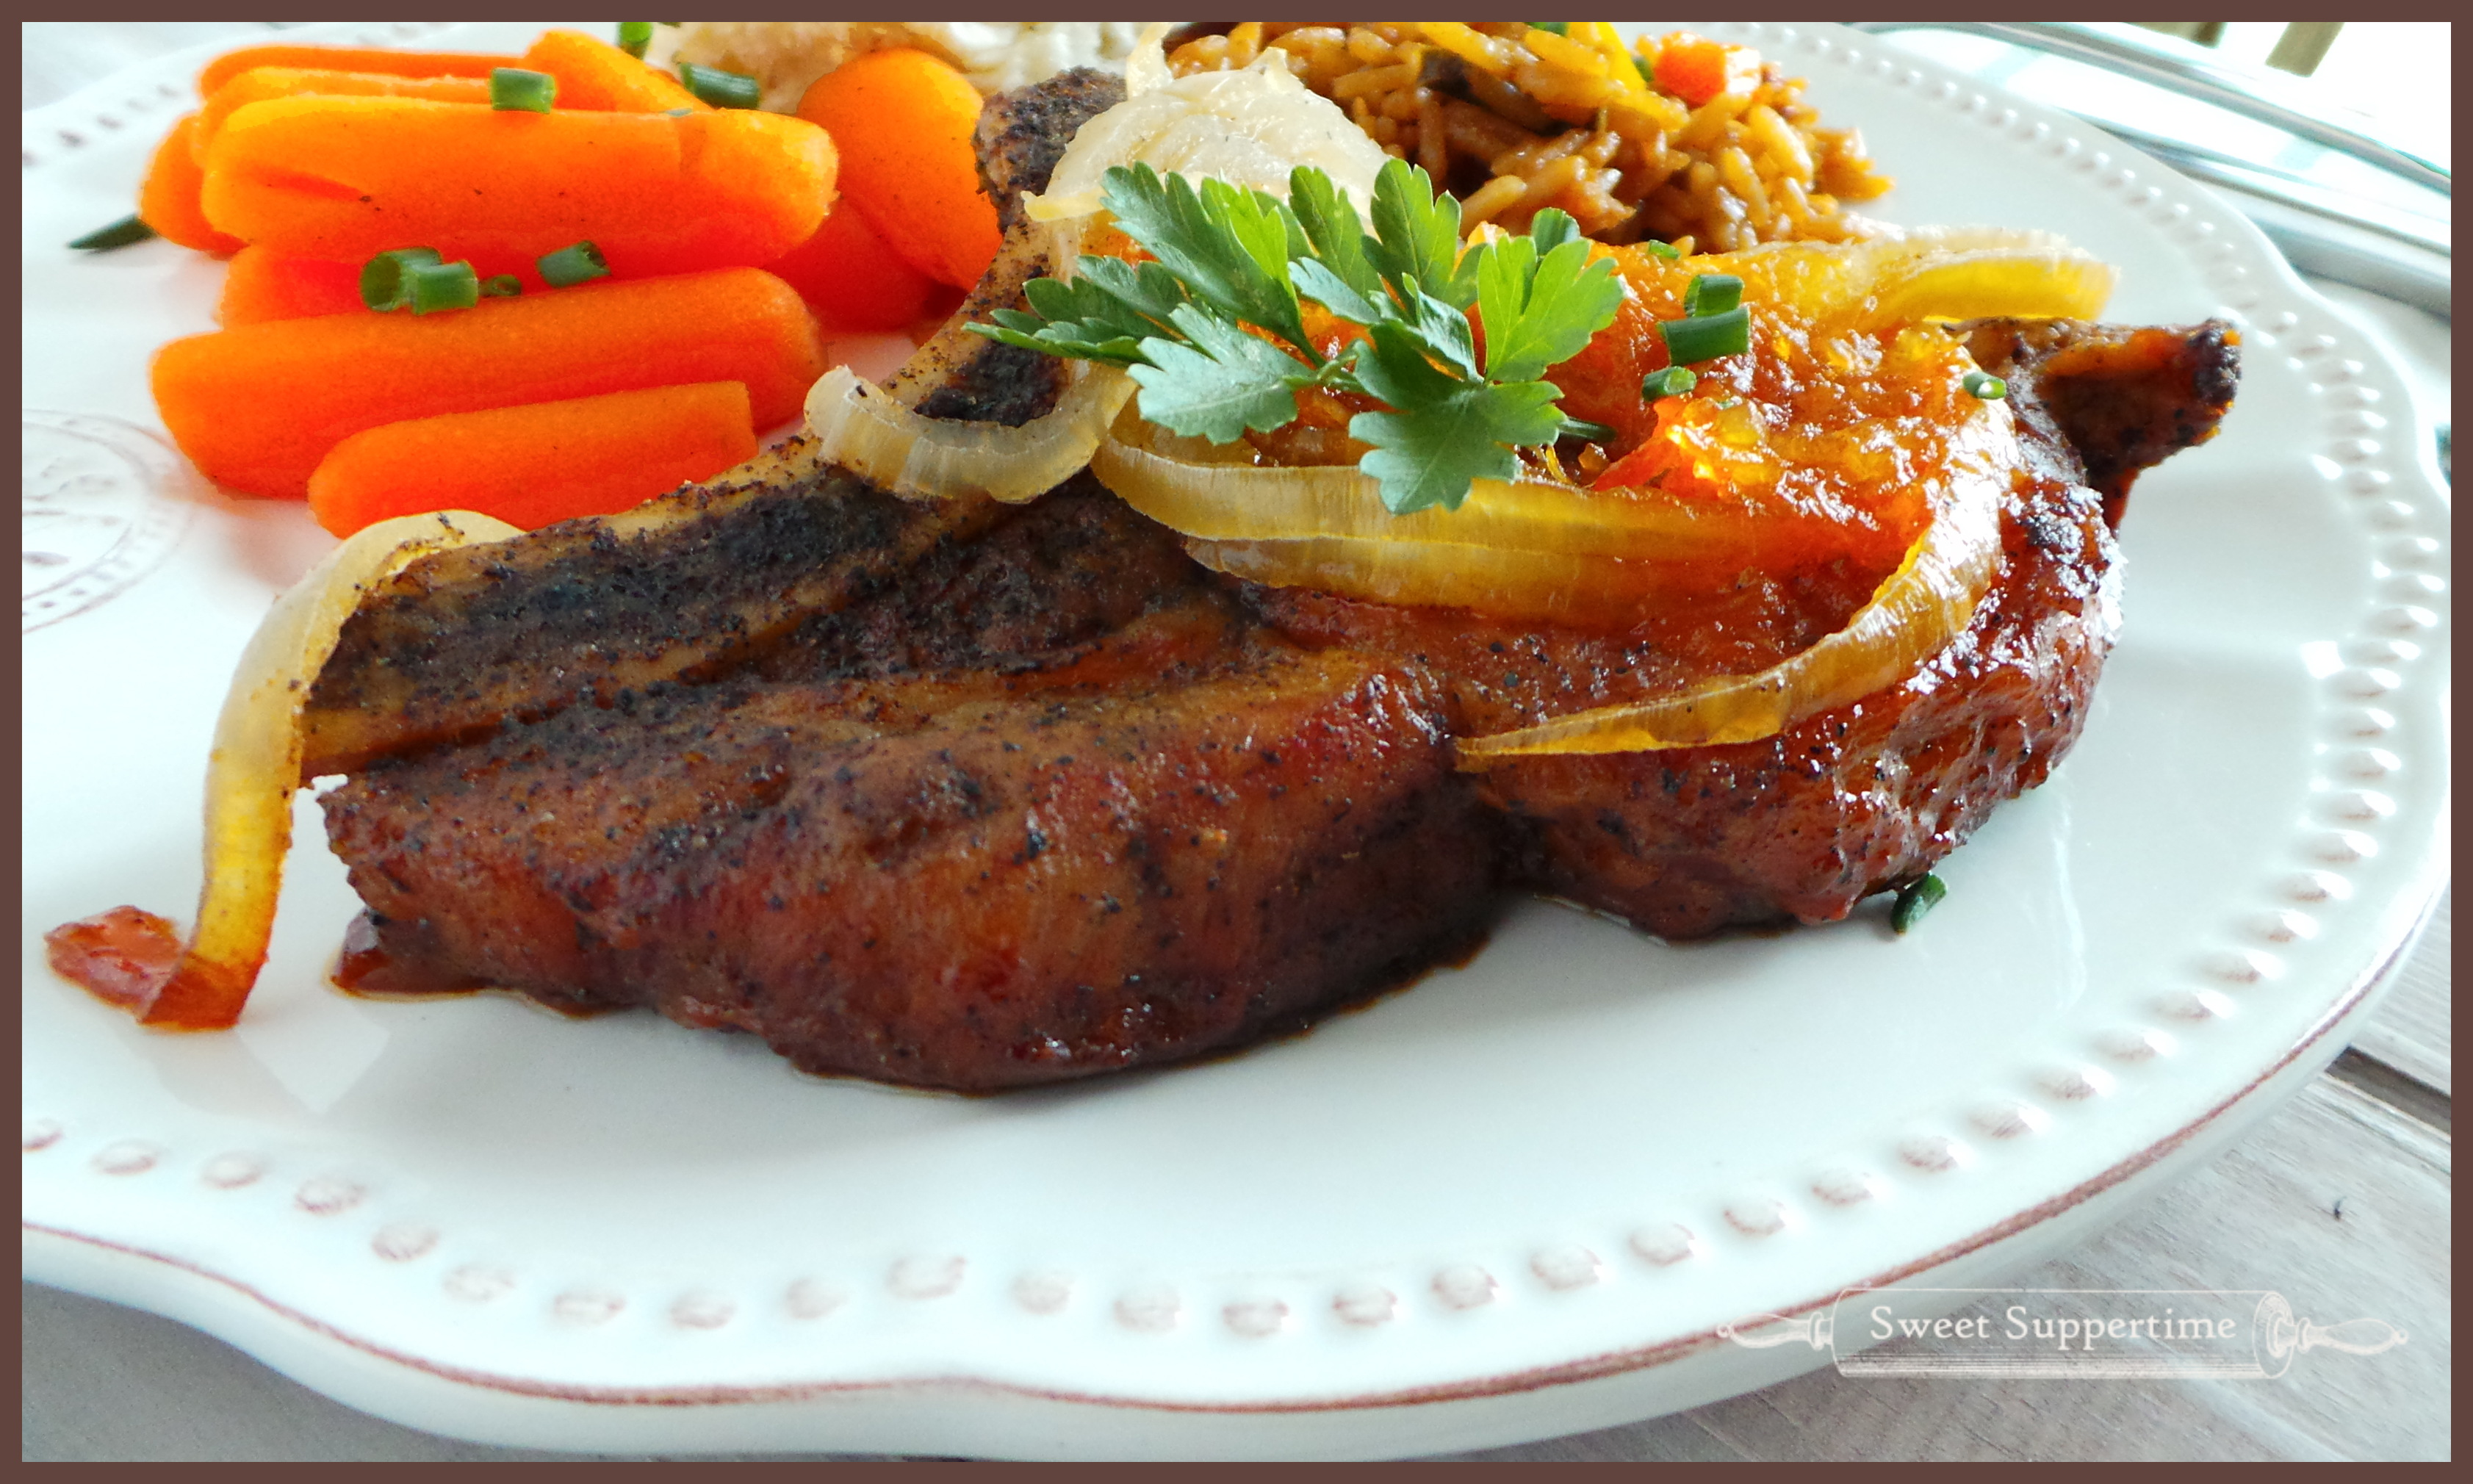 ... Apricot-Glazed-Pork-Chops-With-Sweet-Chili-Sauce-Sweet-Suppertime.jpg